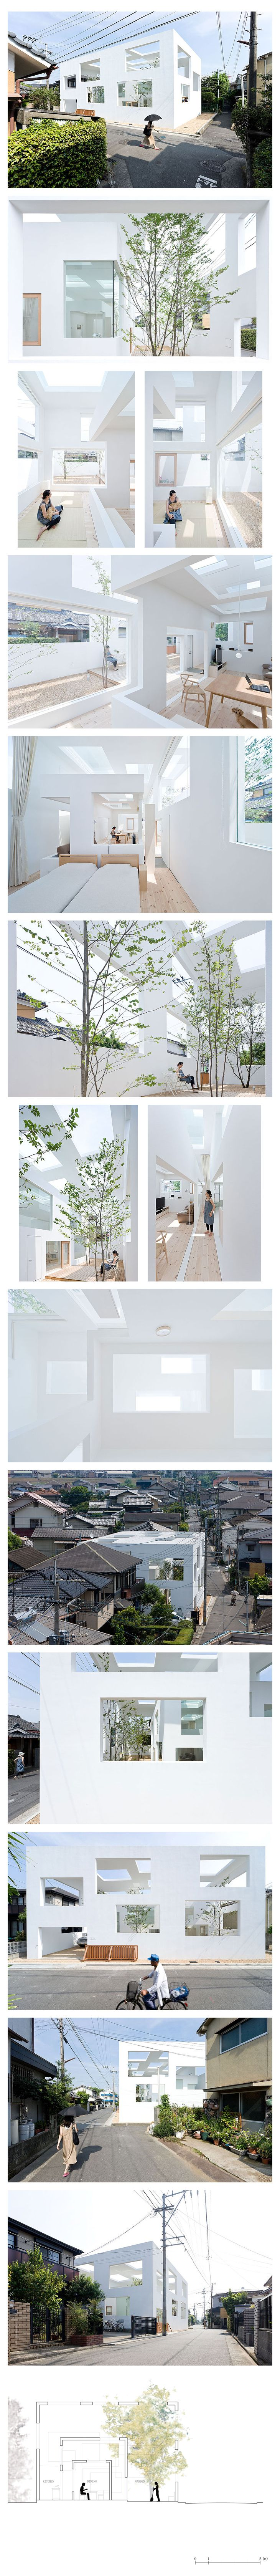 House N by Sou Fujimoto Architects in Oita, Japan